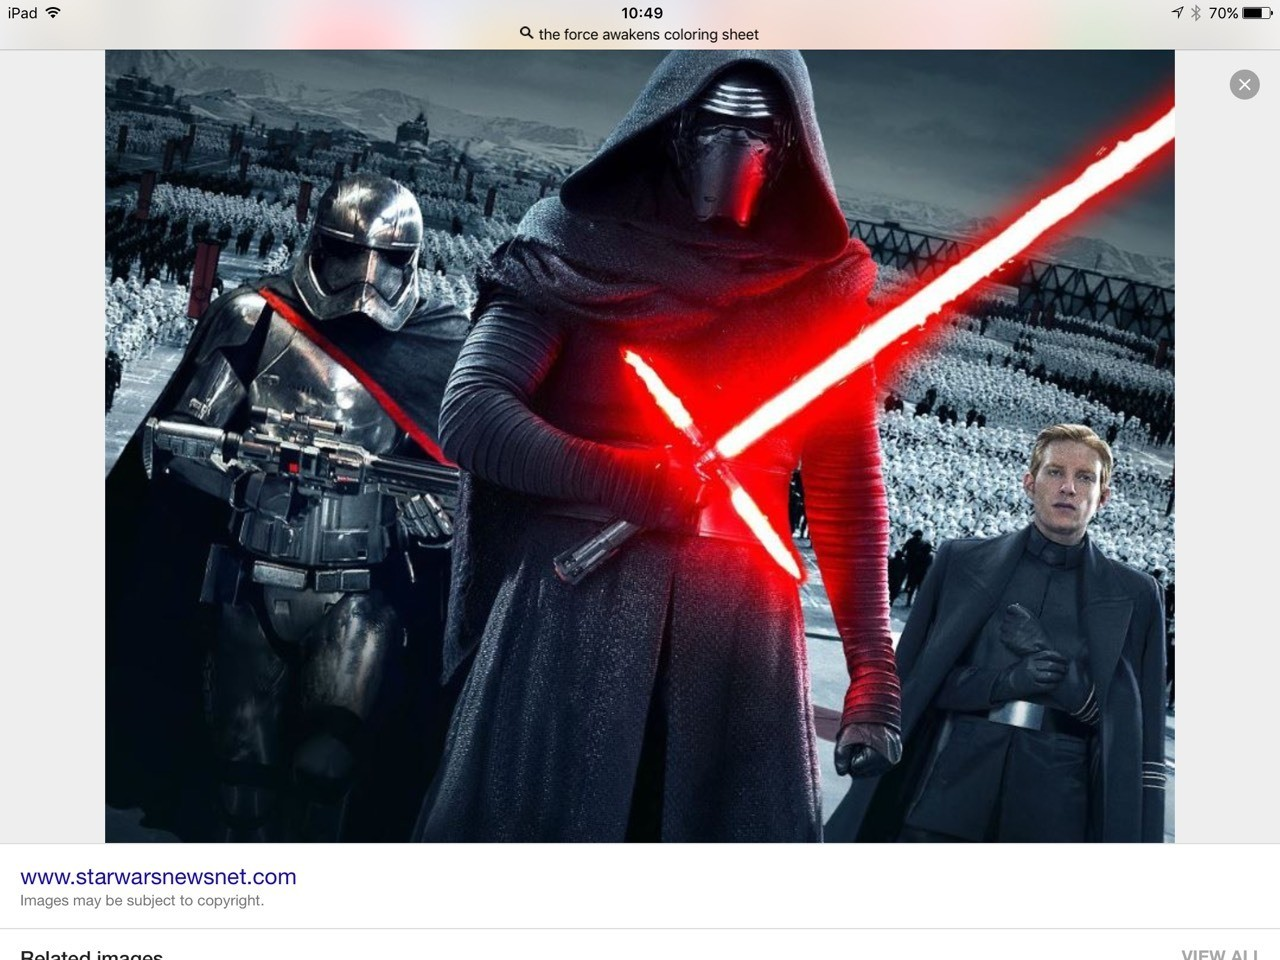 Star Wars thee force awakens is finally here and we are all excited!